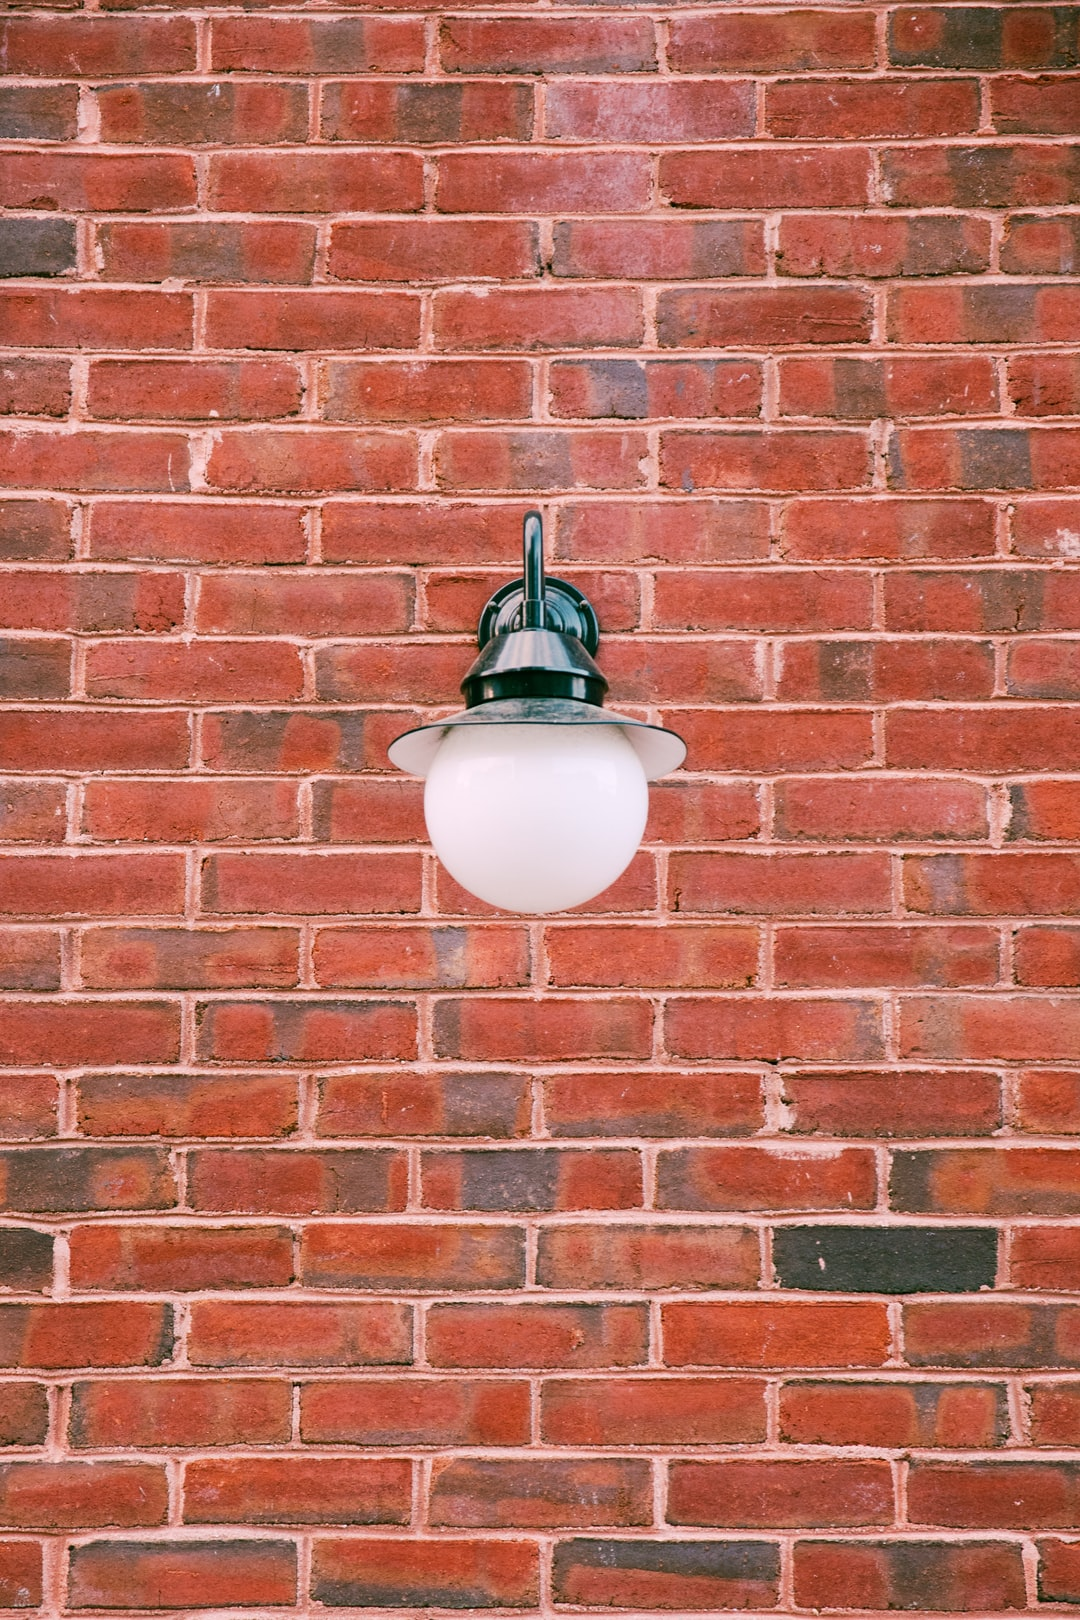 You get Hat Trick > Hat Brick but did you also think this brick is wearing this light like a hat?